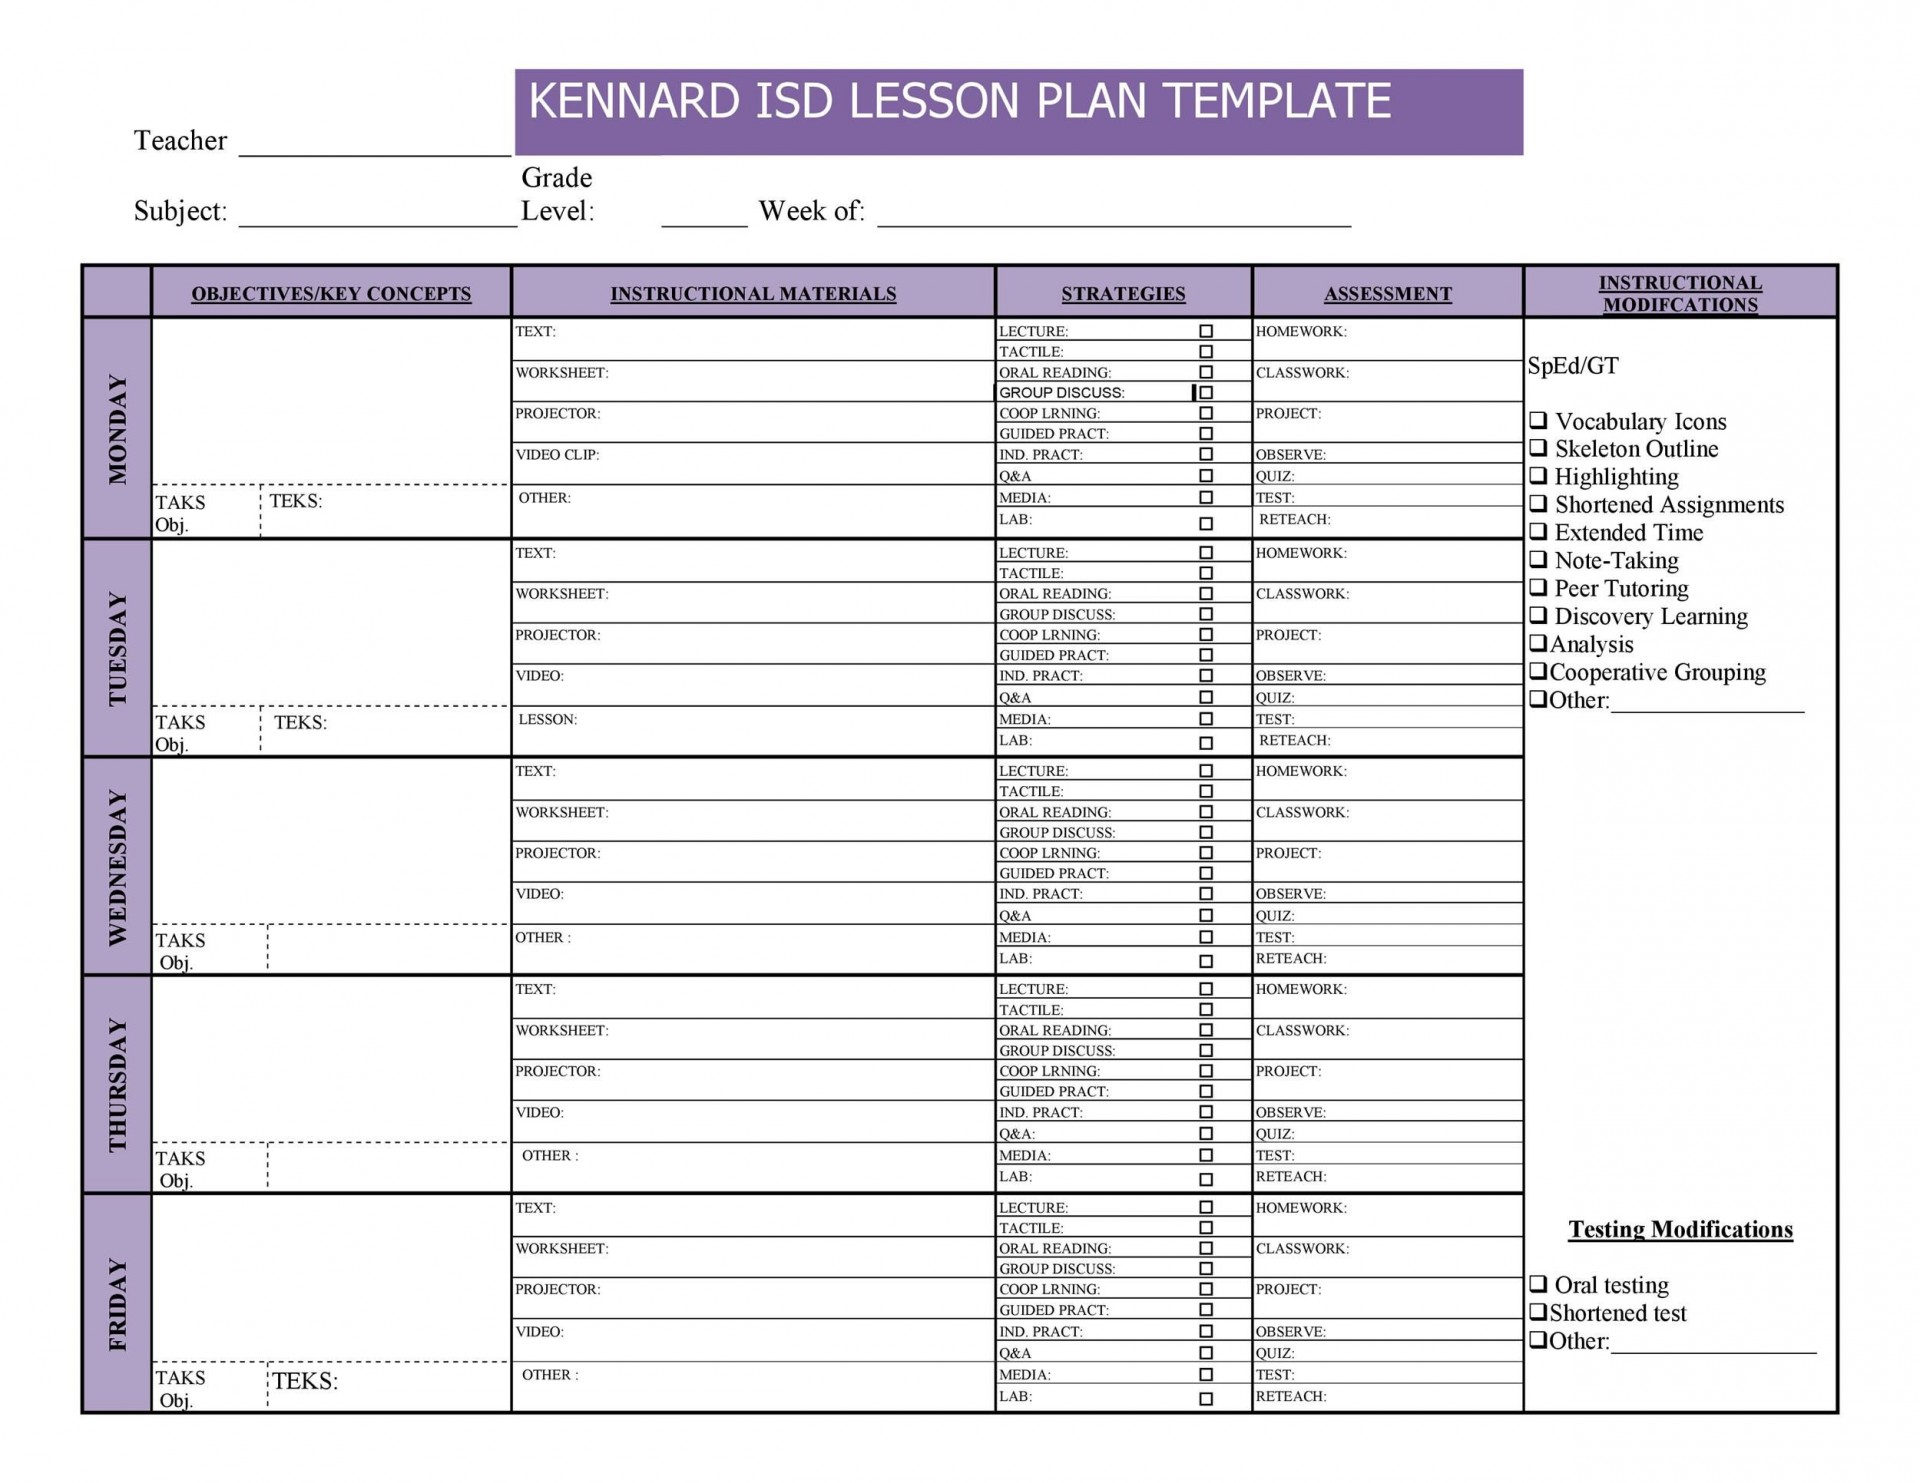 004 Outstanding Weekly Lesson Plan Template High School Image  Free Example For English Pdf Of Junior1920